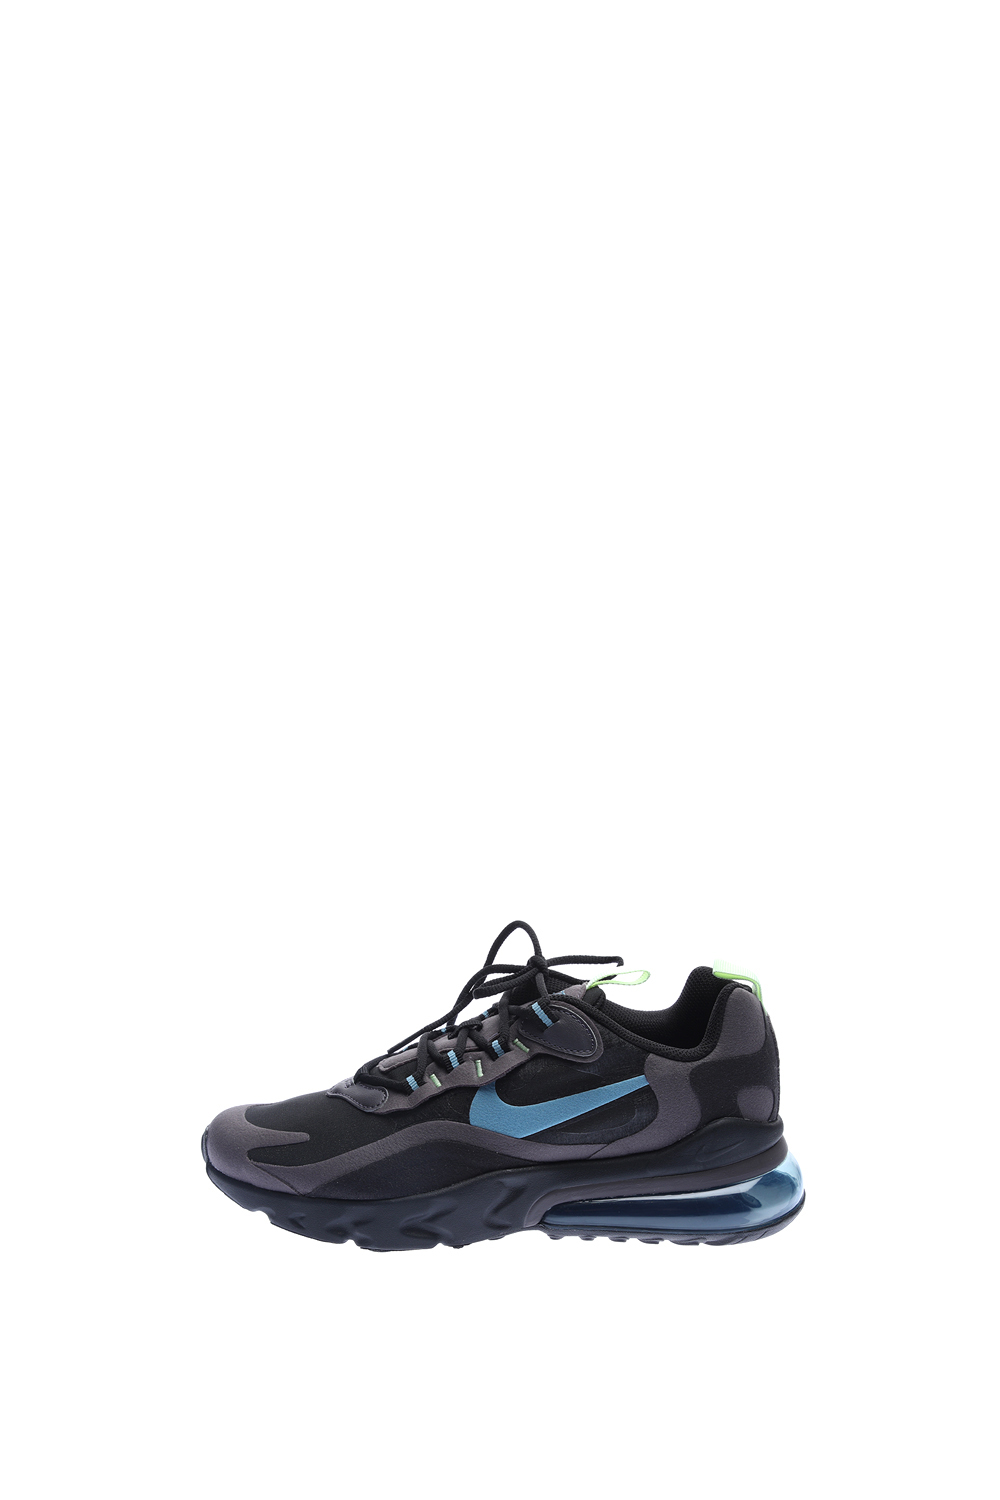 NIKE – Παιδικά αθλητικά παπούτσια NIKE AIR MAX 270 REACT (GS) μαύρα-μπλε